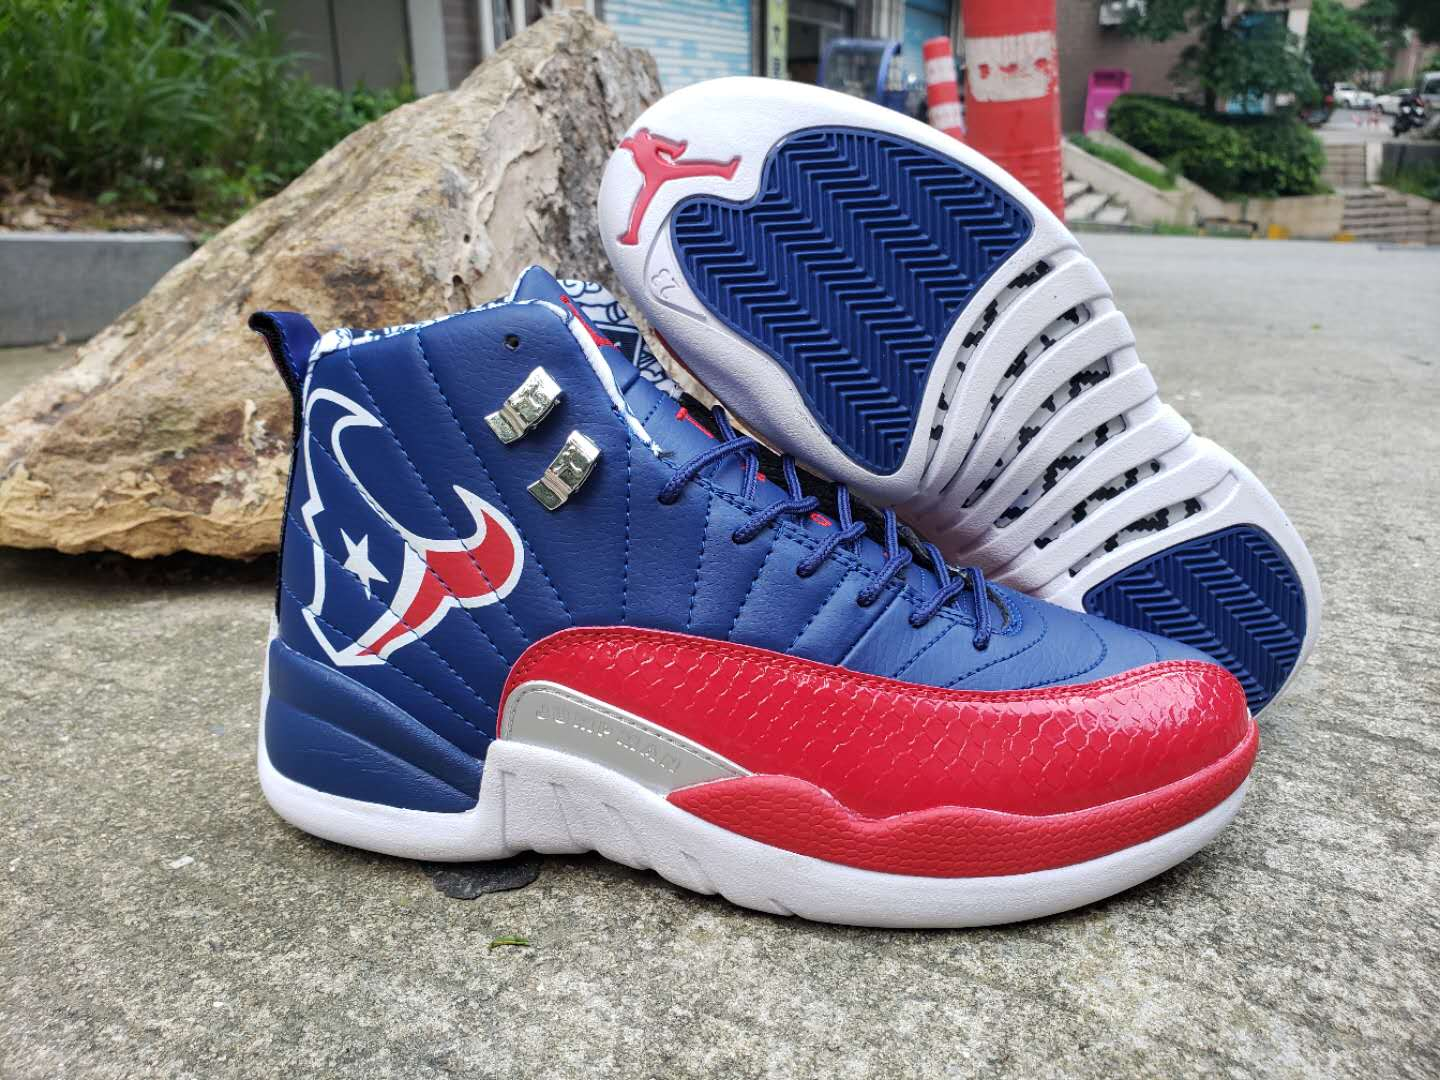 New Air Jordan 12 Championship Blue Red White Shoes